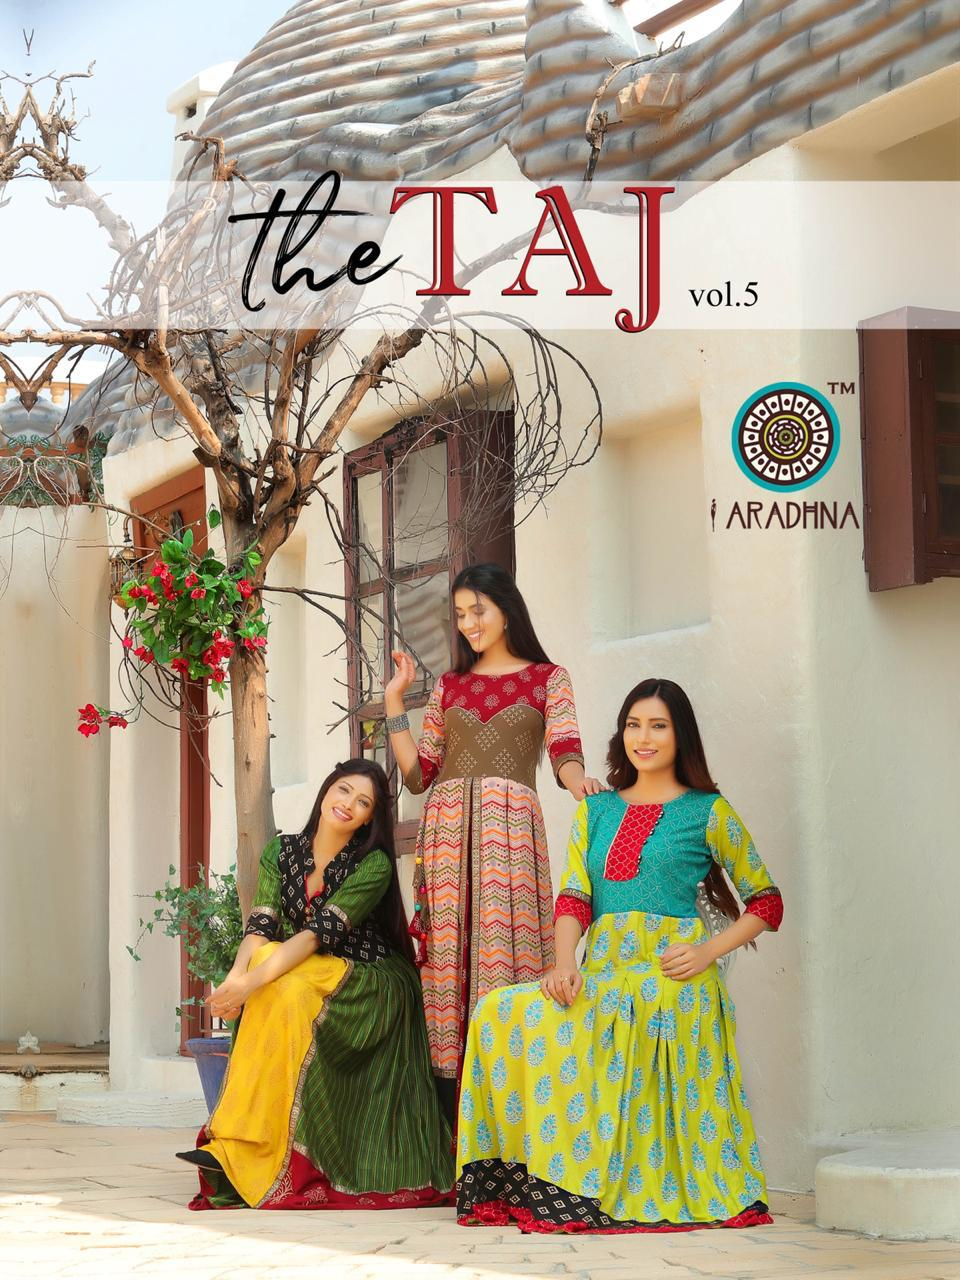 Aradhna Taj Vol 5 Heavy Rayon Cotton Print With Embroidery Work Gowns Wholesale